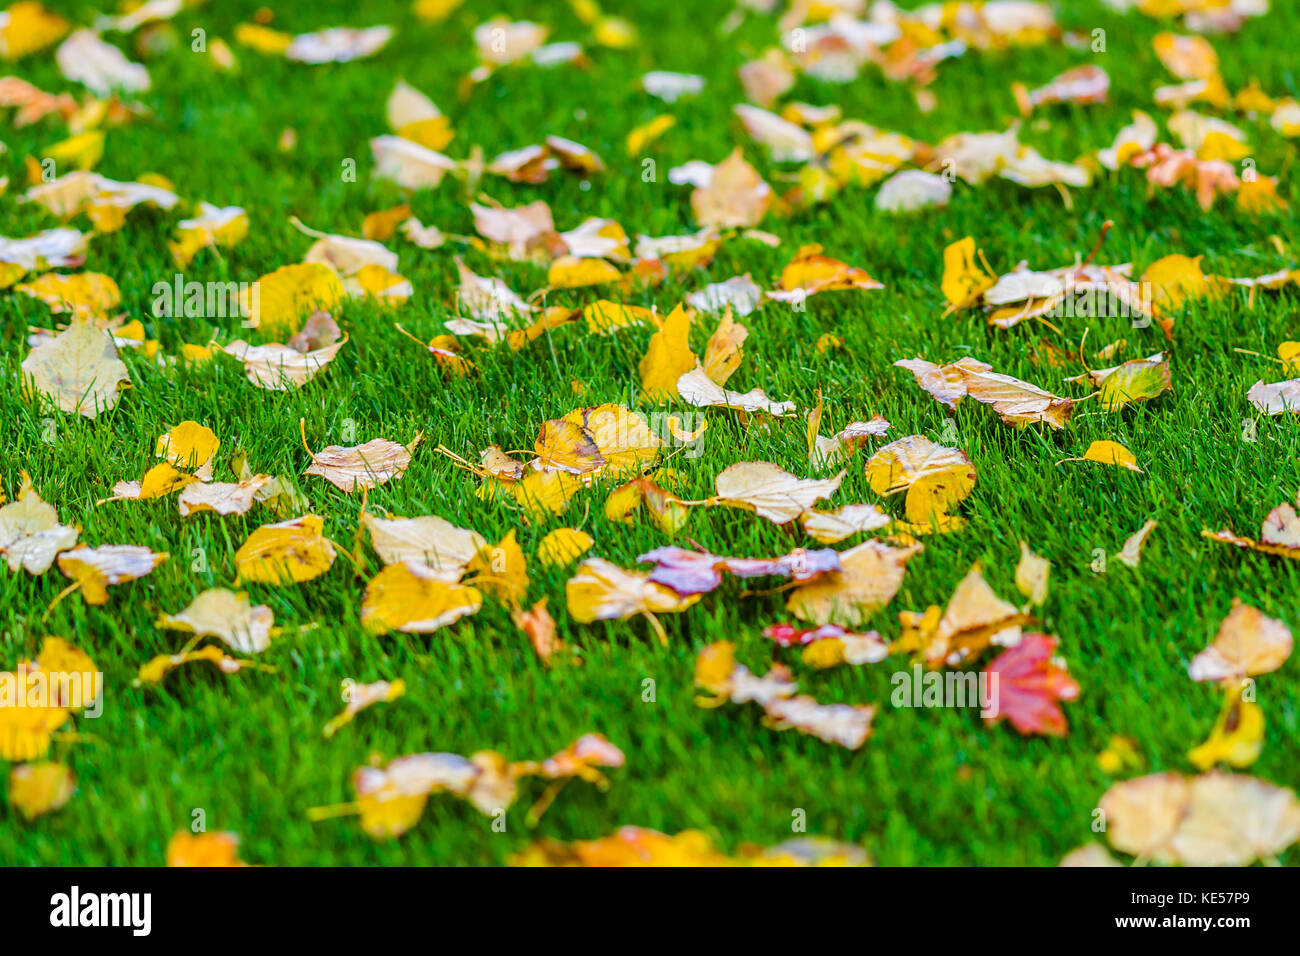 Wet yellow linden tree leaves on a bright green grass. Golden autumn ...